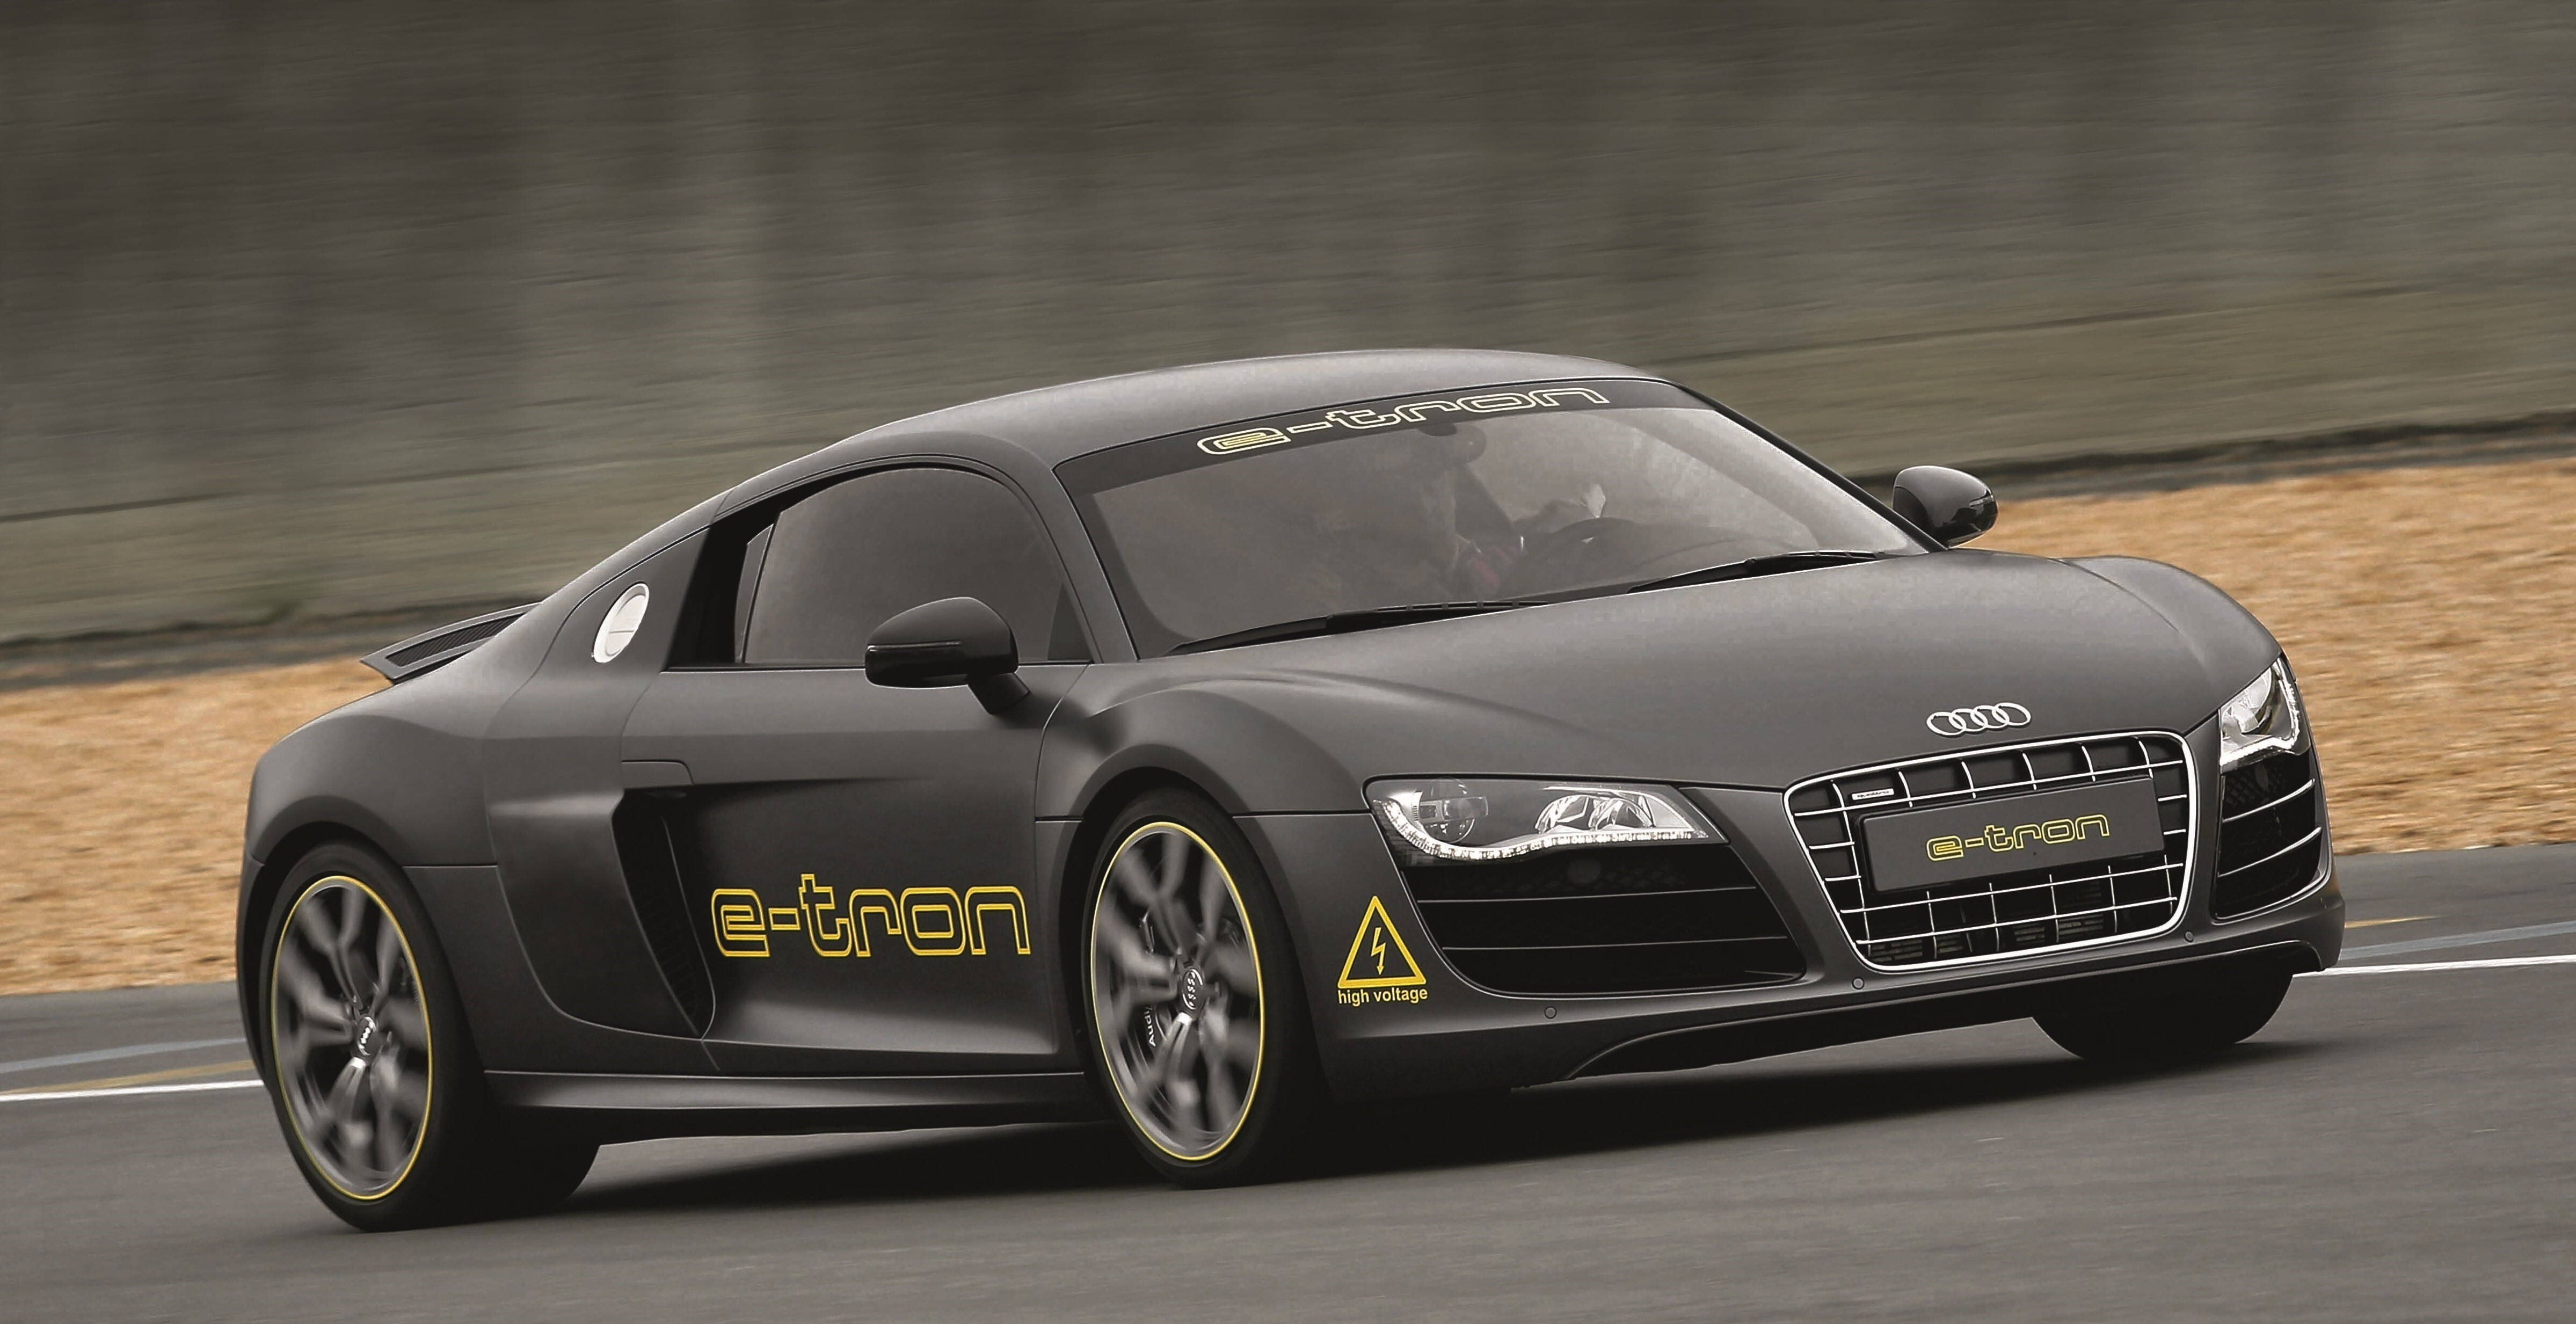 New_Latest_Model_of_Audi_R8_e_tron_Gray_Car_on_Road_Way_Wallpapers.jpg